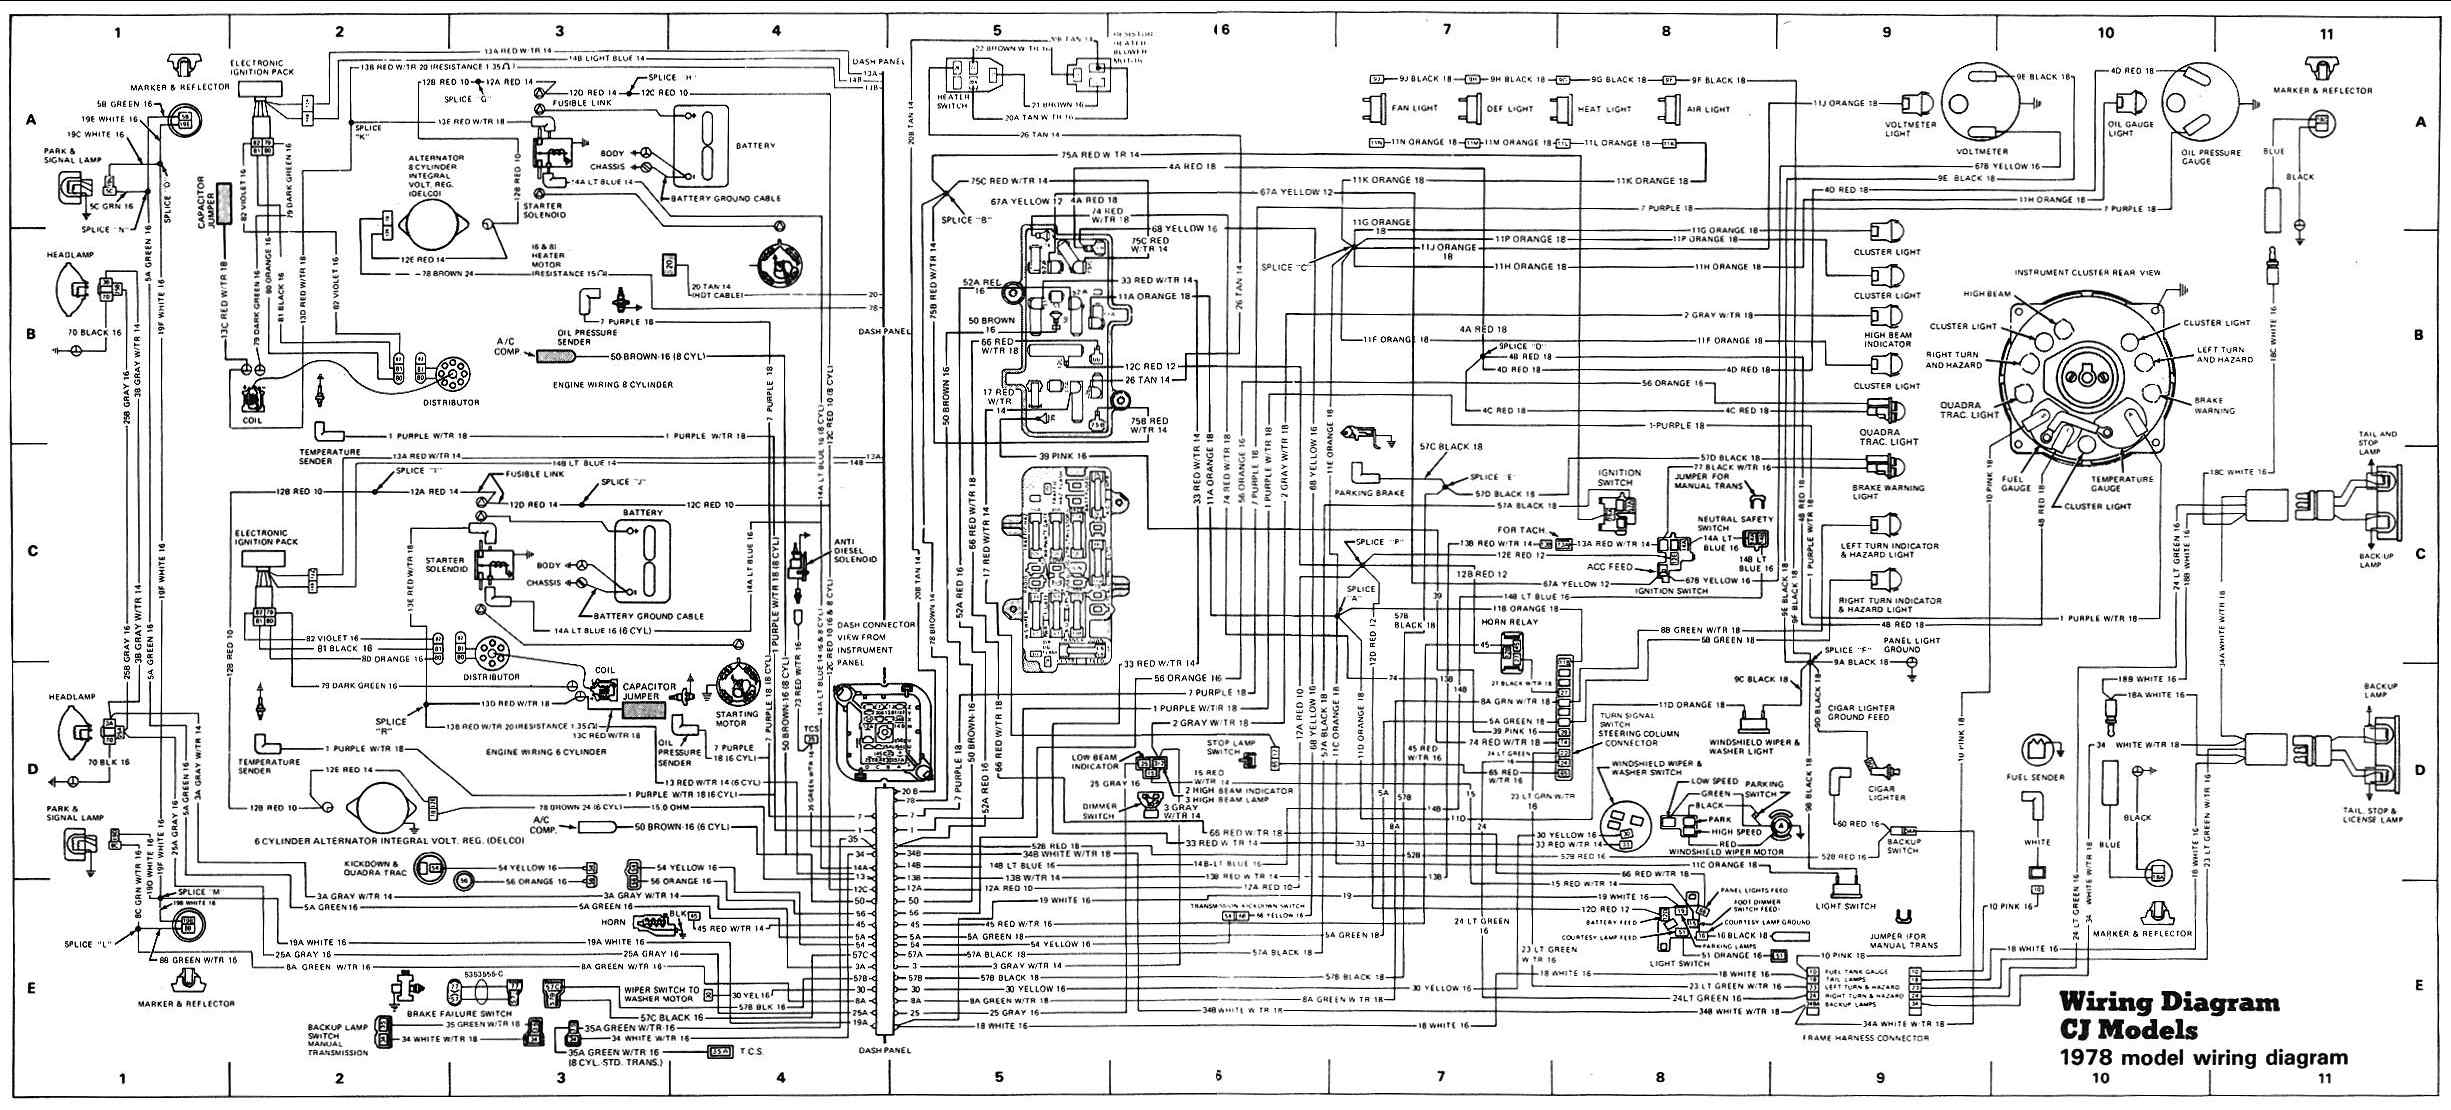 2009 Jeep Grand Cherokee Wiring Diagram | wiring schematic |  subject-turbo.pesarocoupon.it | 1998 Jeep Grand Cherokee Wiring Diagrams Pdf |  | wiring schematic